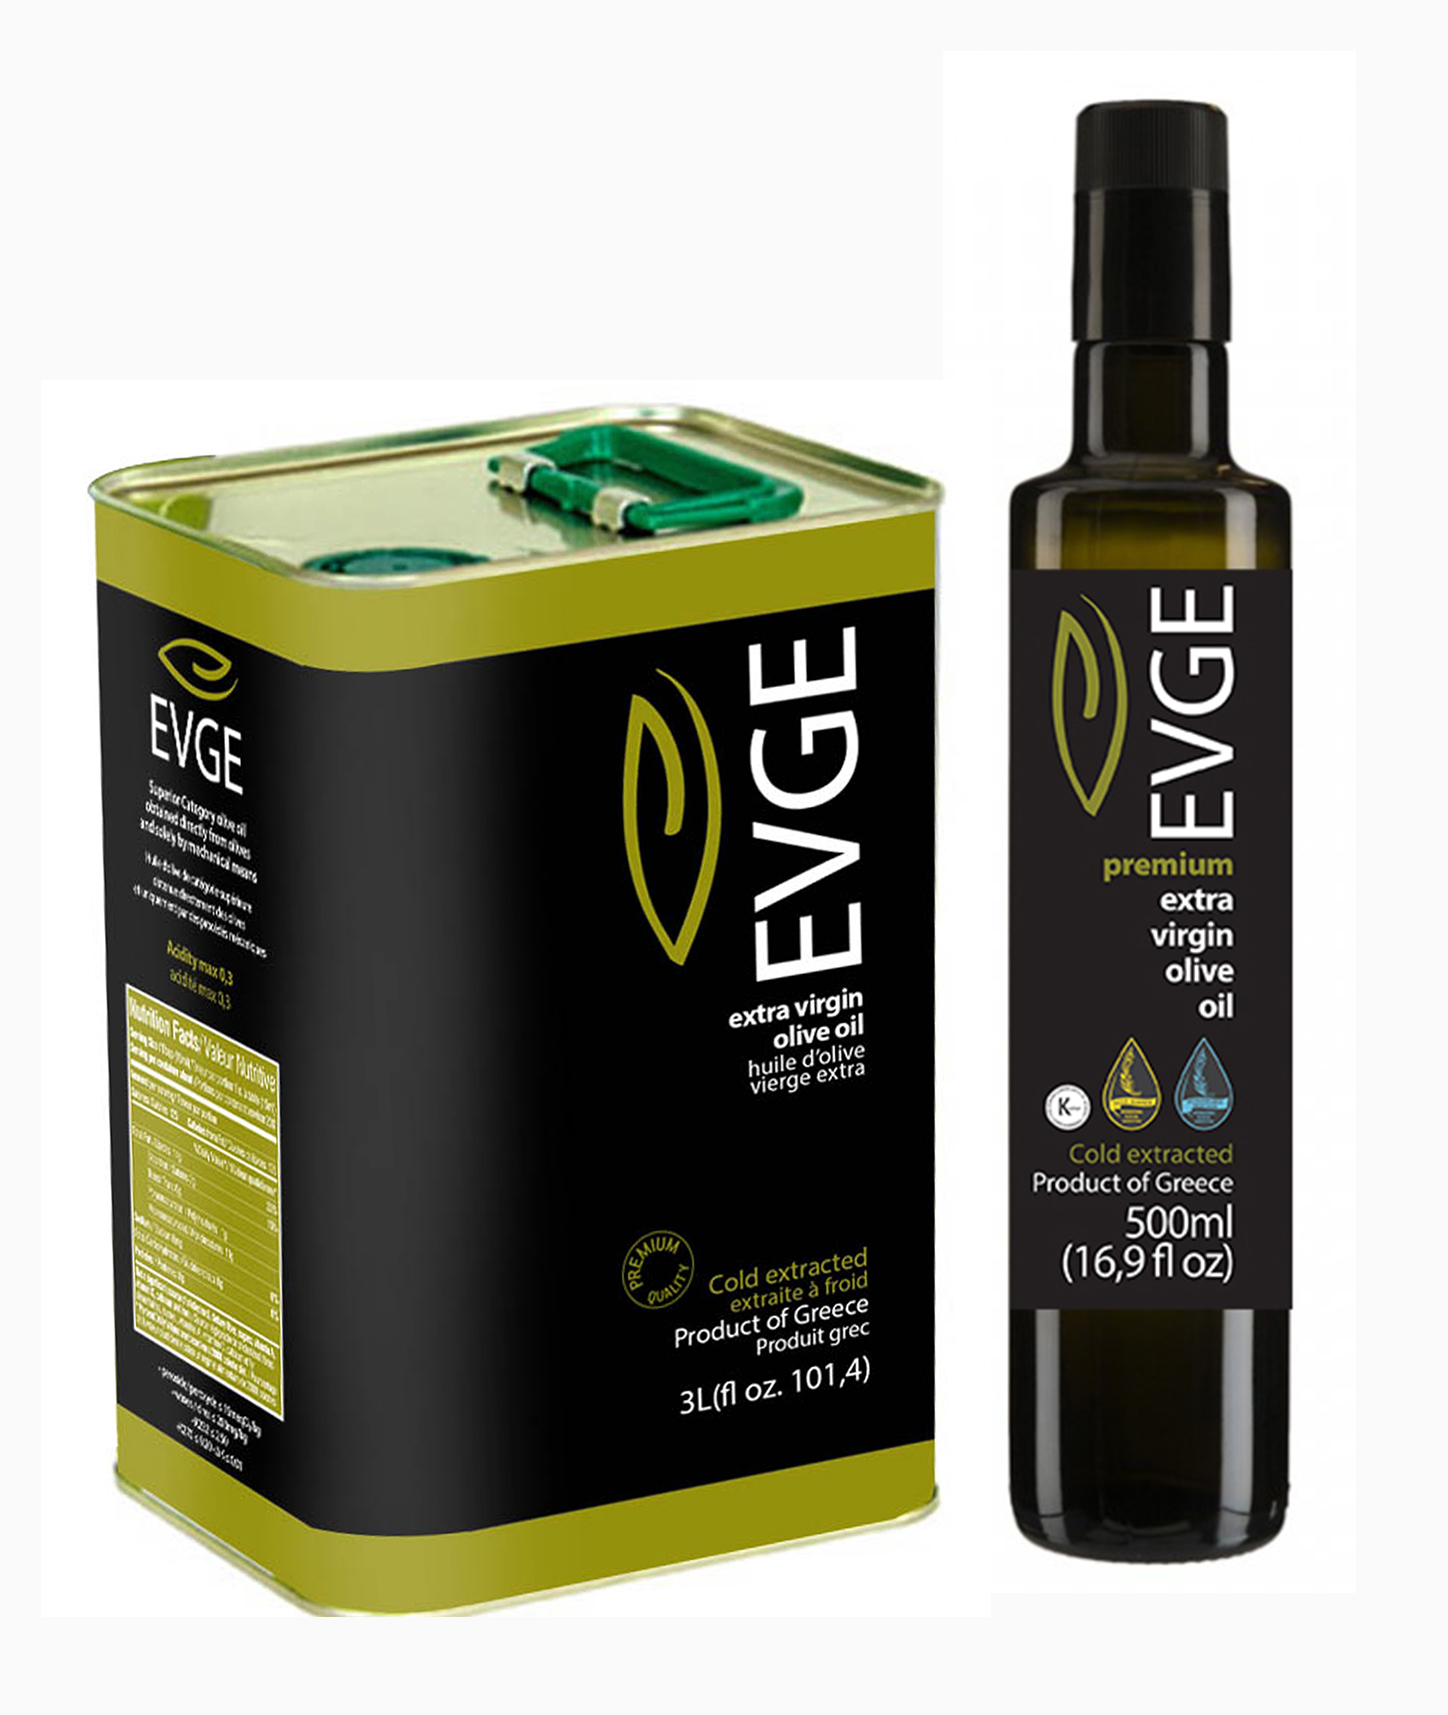 EVGE EXTRA VIRGIN OLIVE OIL